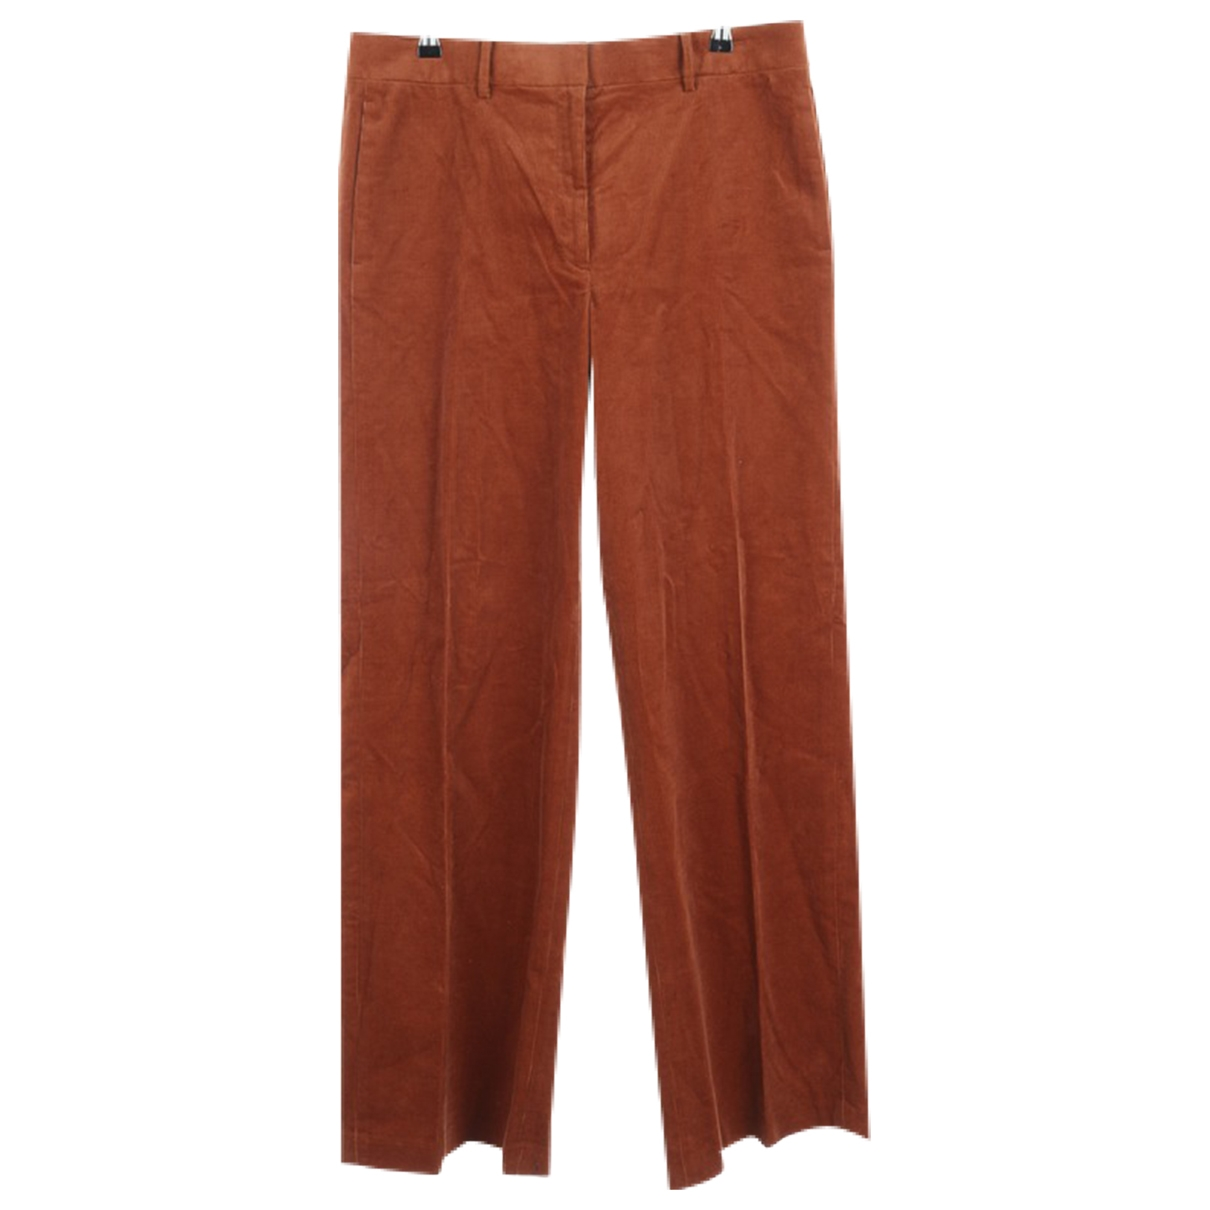 Tory Burch \N Brown Cotton Trousers for Women 32 FR